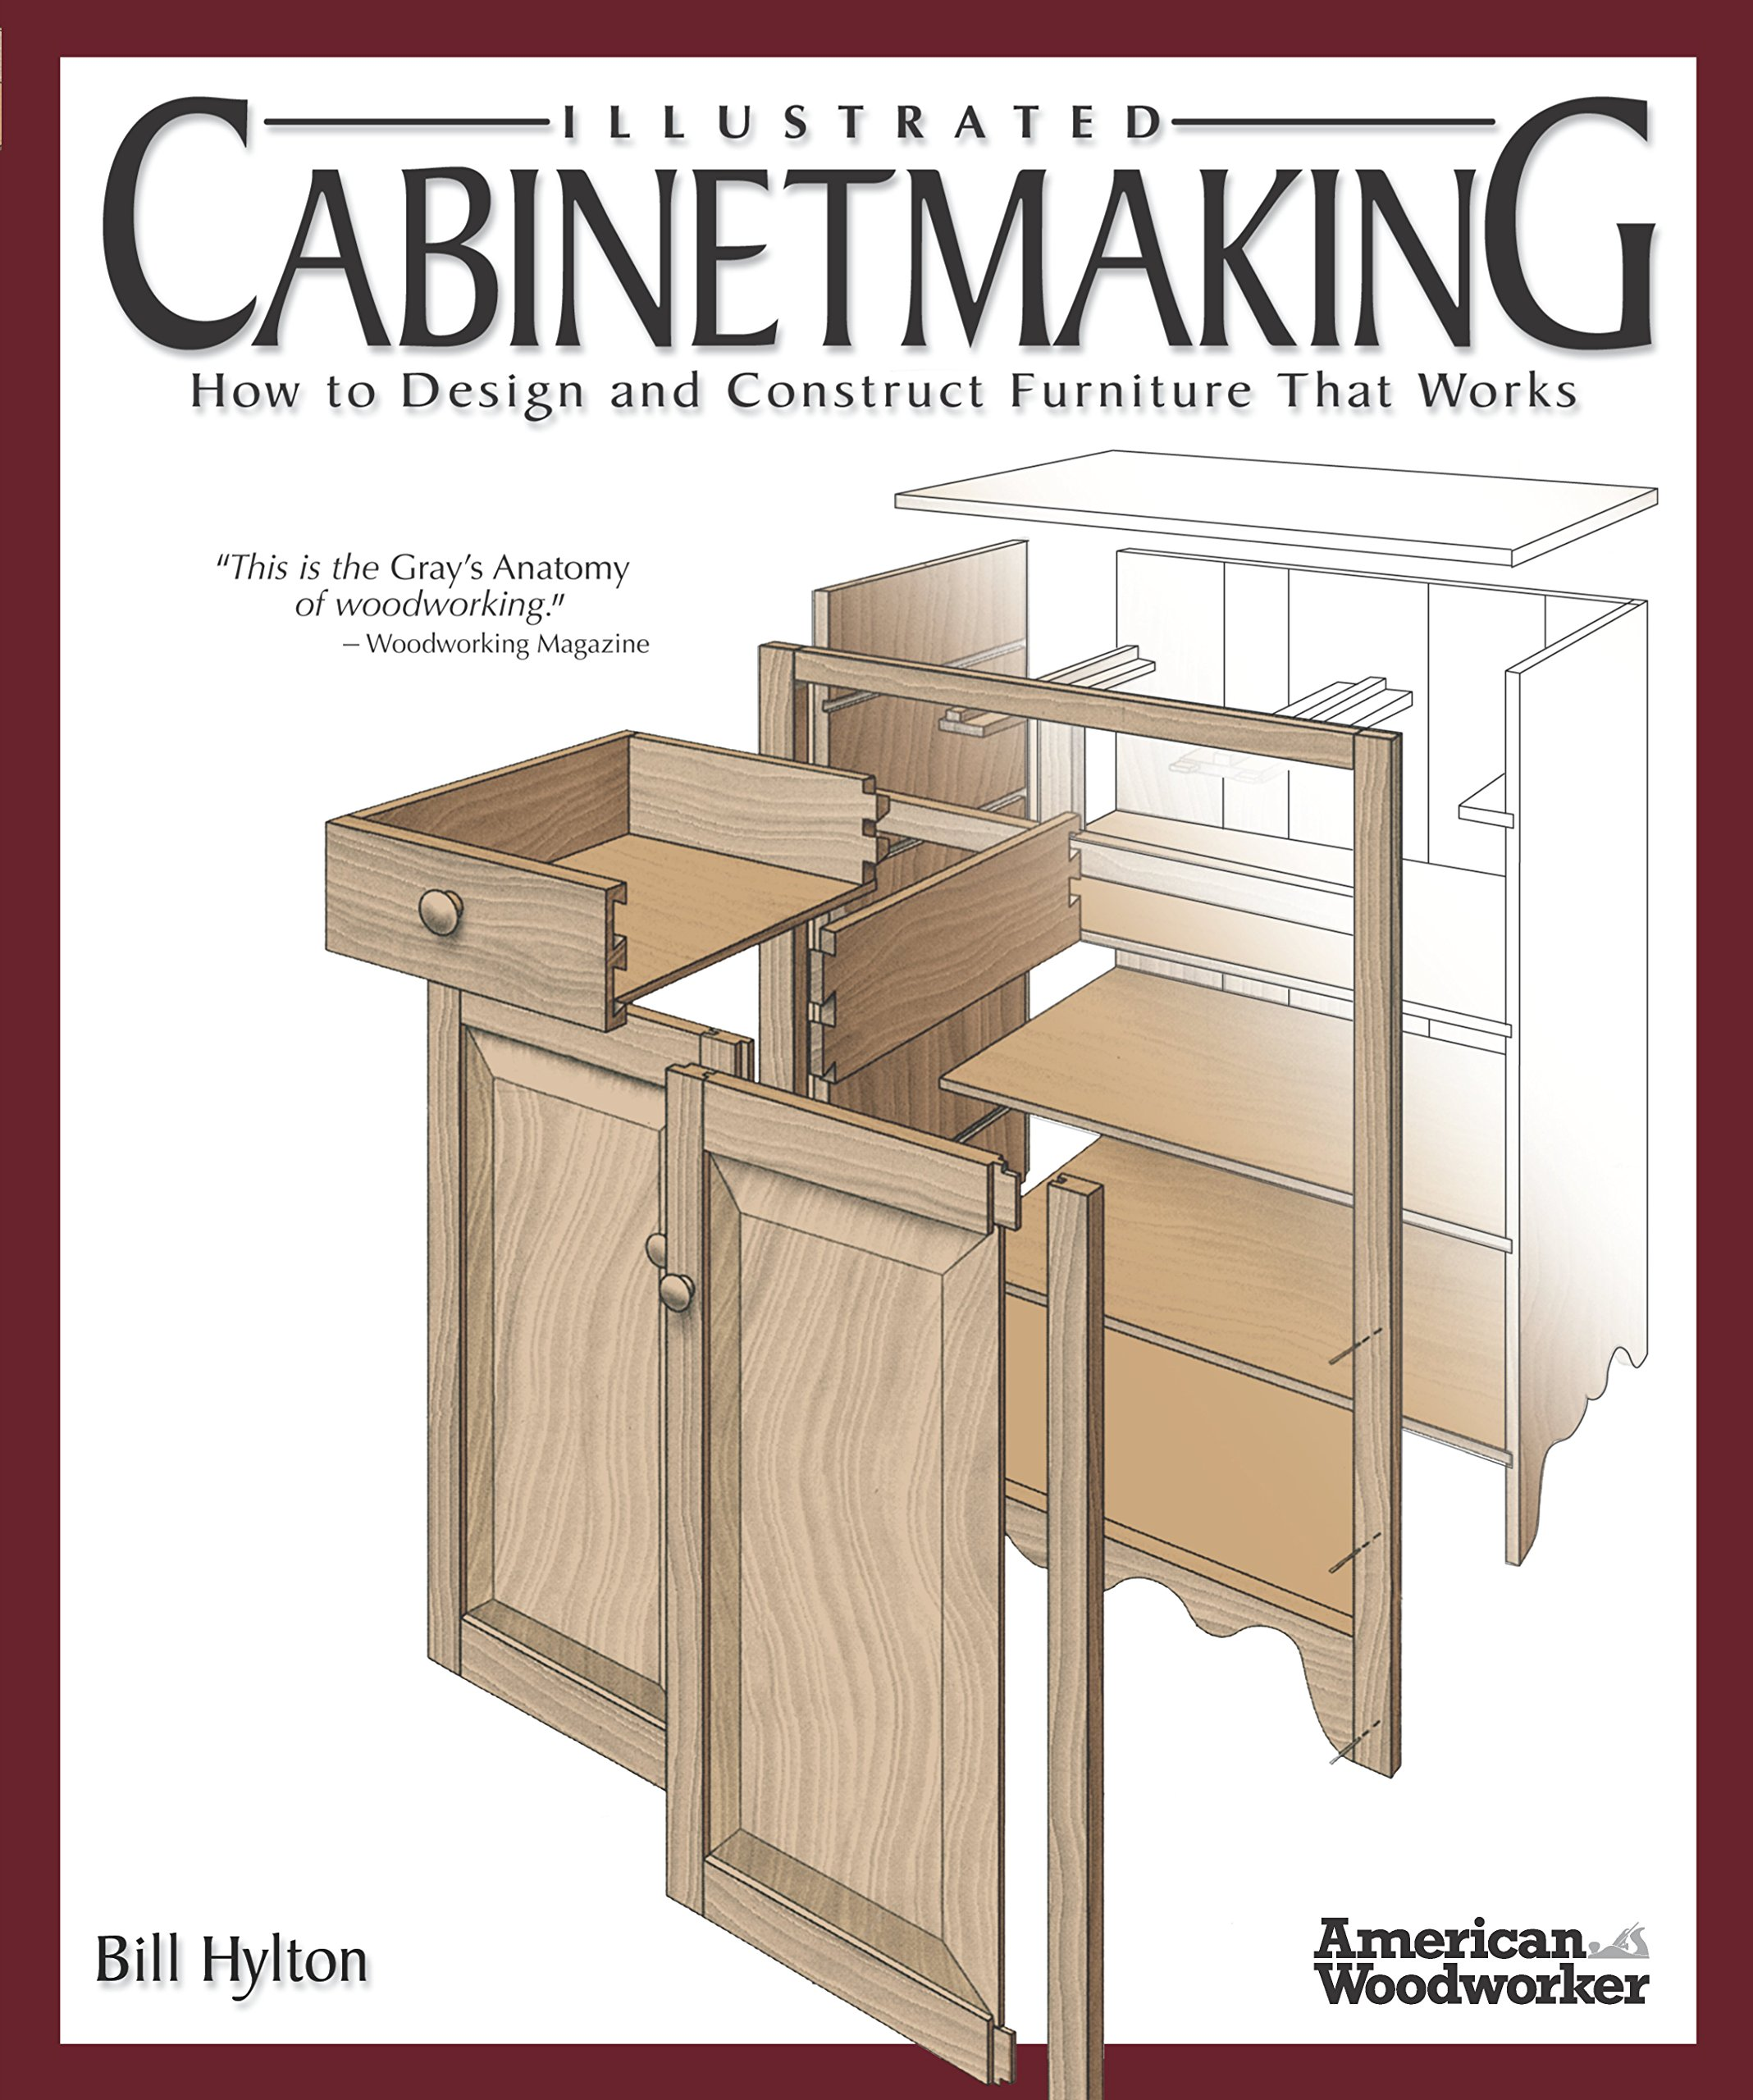 Illustrated Cabinetmaking: How to Design and Construct Furniture That Works (Fox Chapel Publishing) Over 1300 Drawings & Diagrams for Drawers, Tables, Beds, Bookcases, Cabinets, Joints & Subassemblies PDF